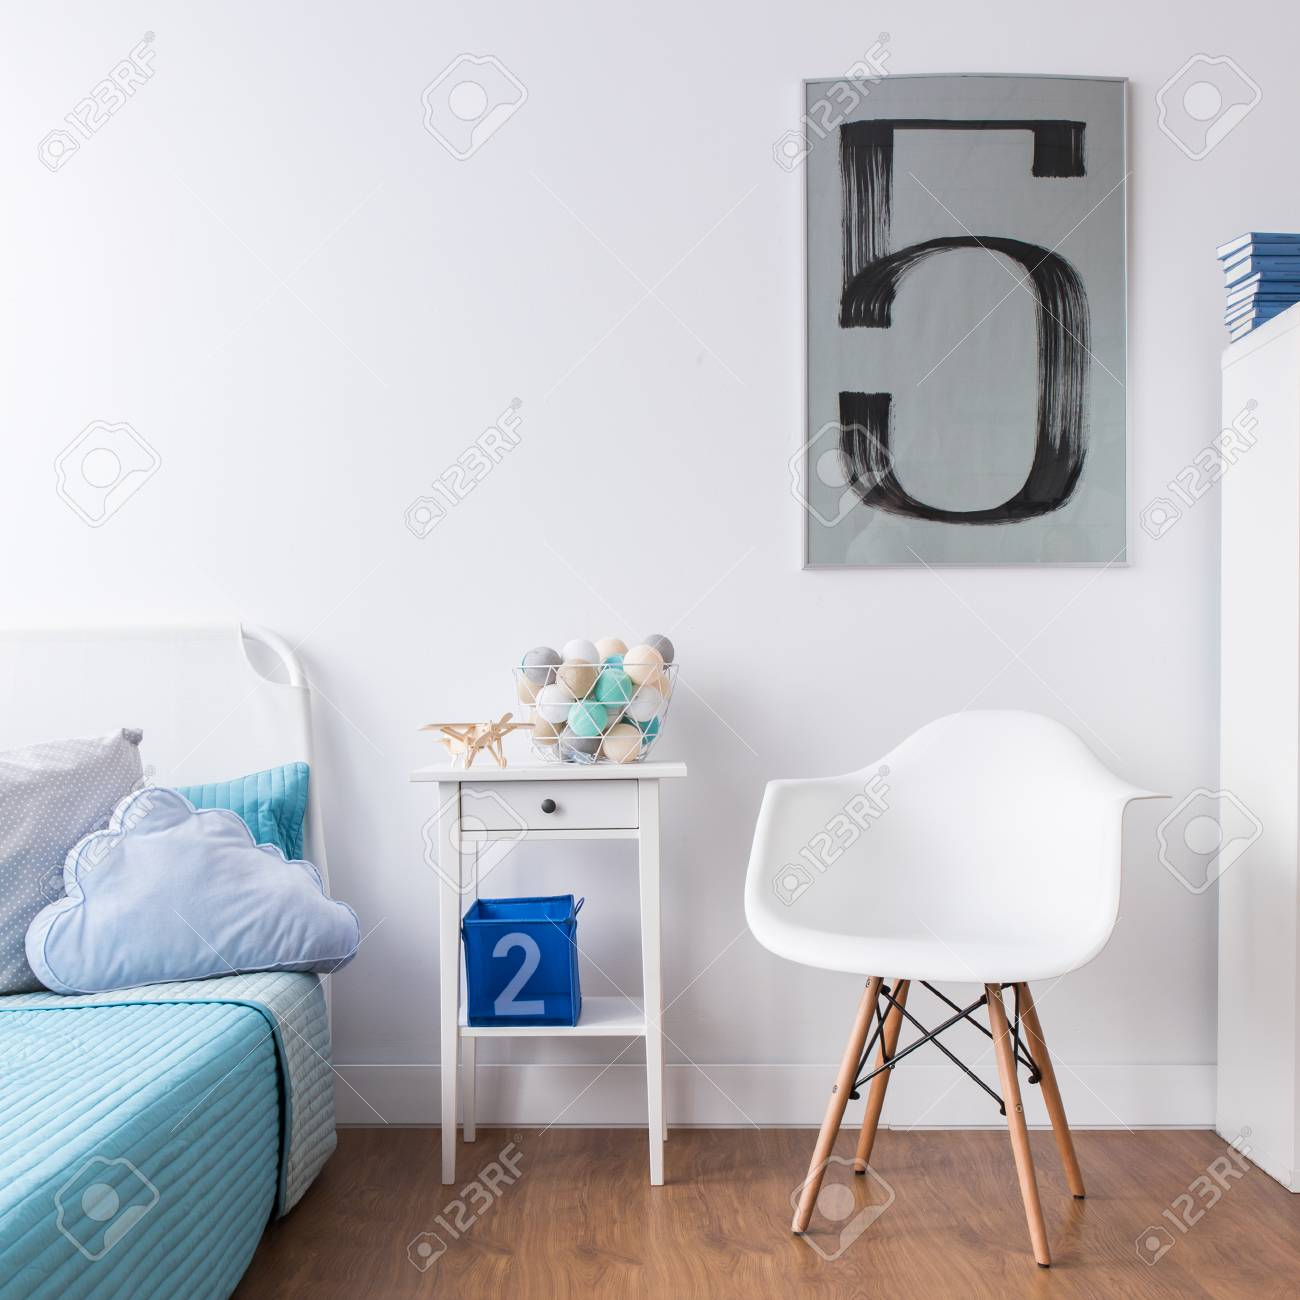 Child bedroom in light colors with bed and stylish chair